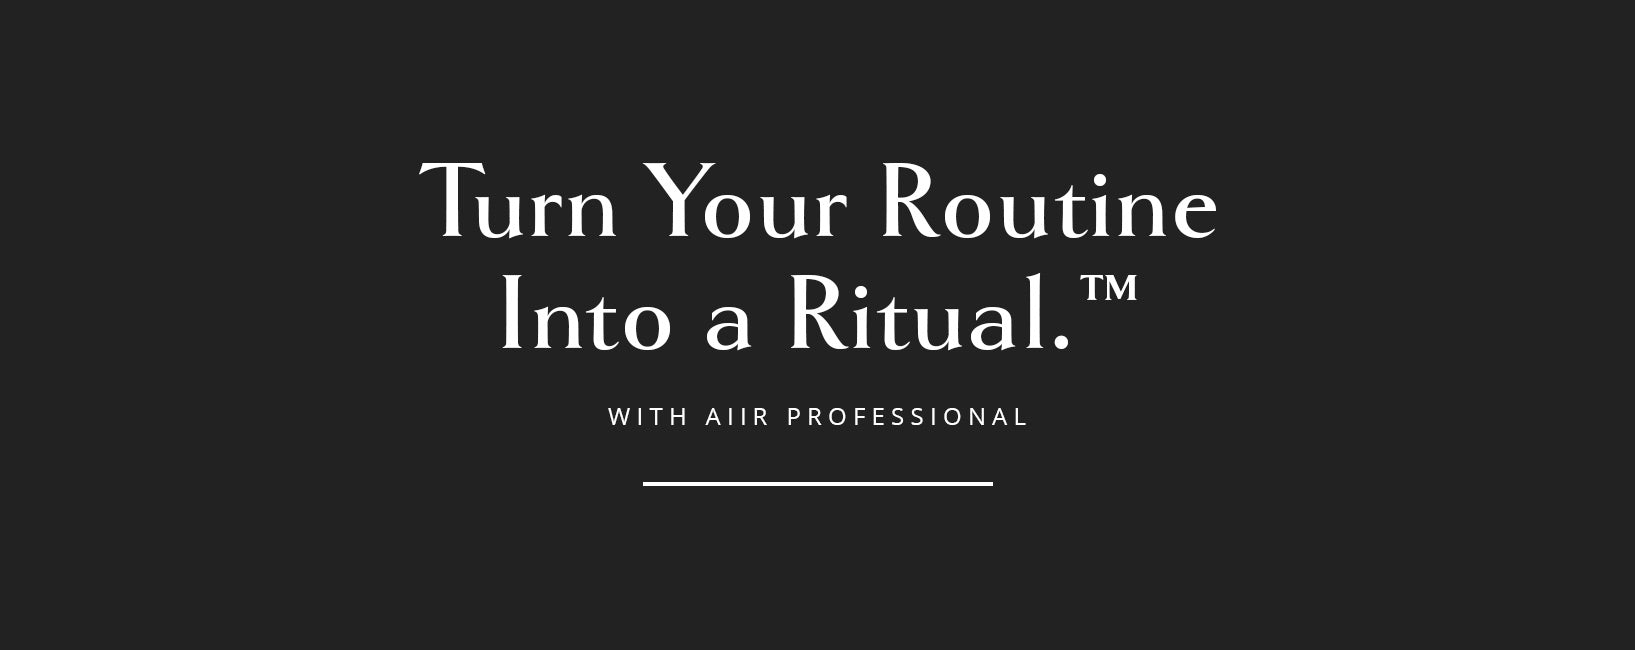 Turn Your Routine into a Ritual